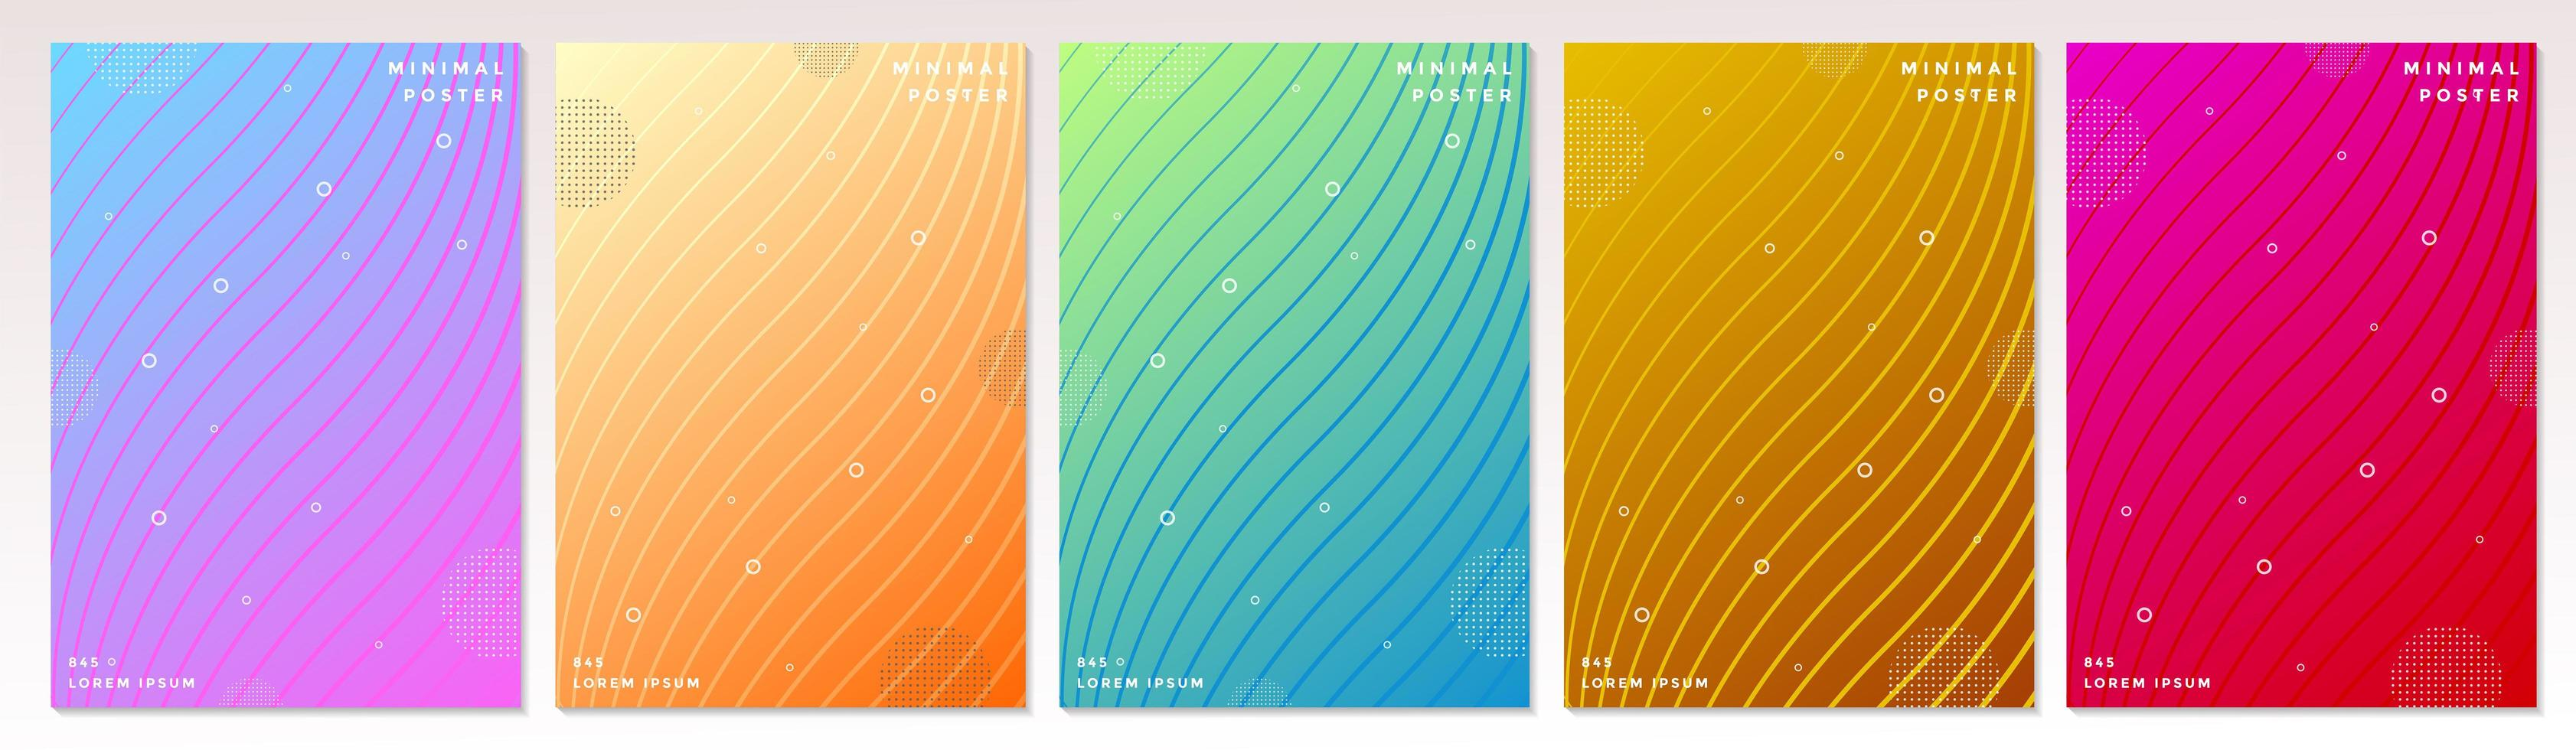 Abstract bright colorful minimal covers  vector